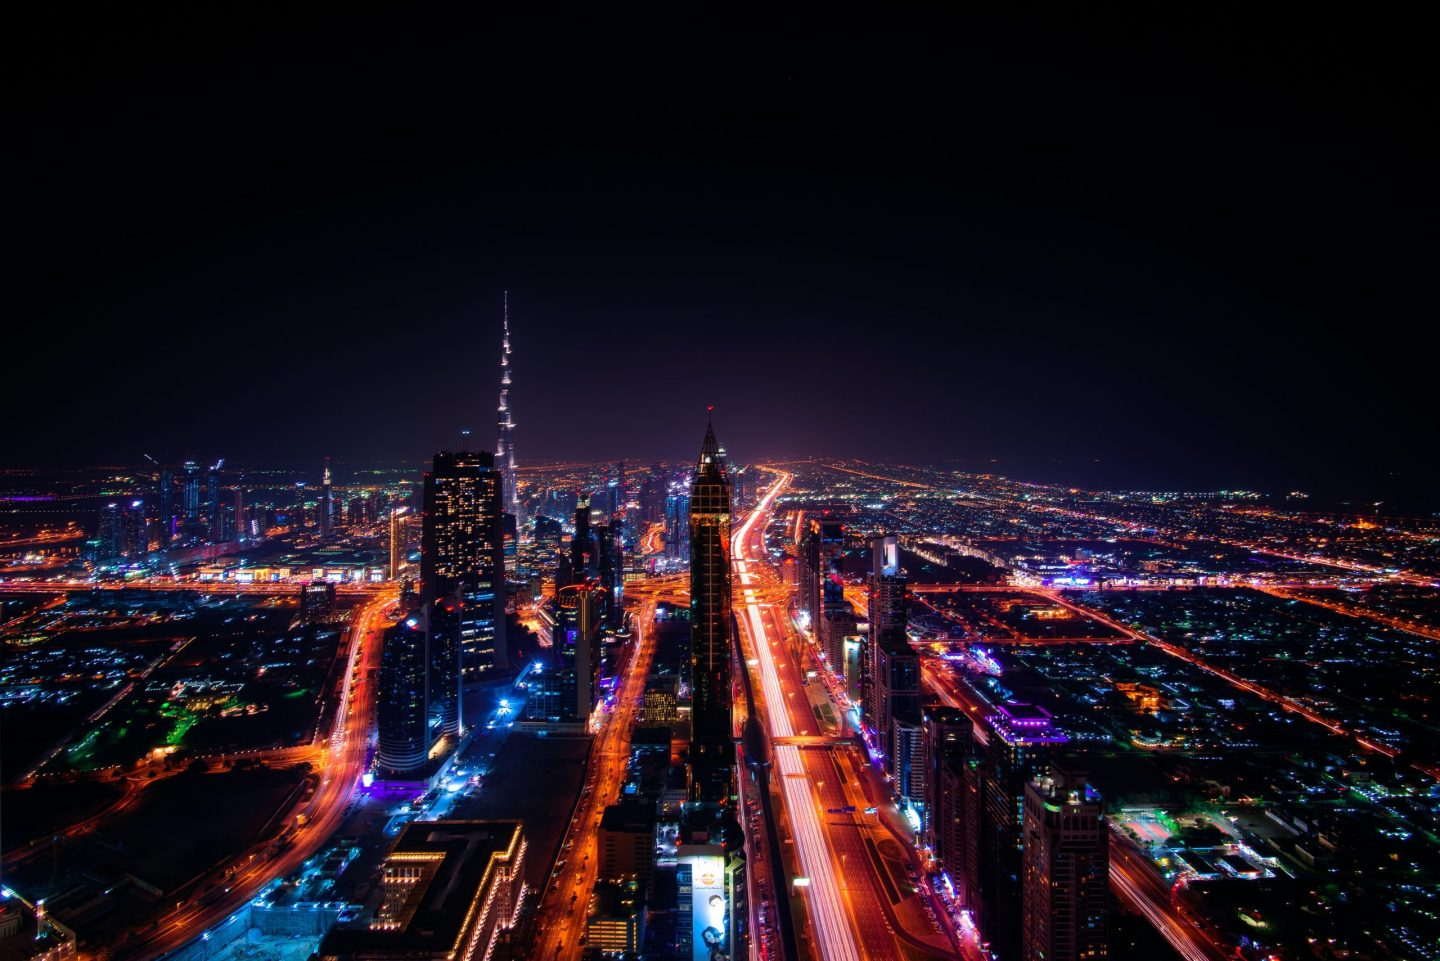 Travelling in Dubai at night